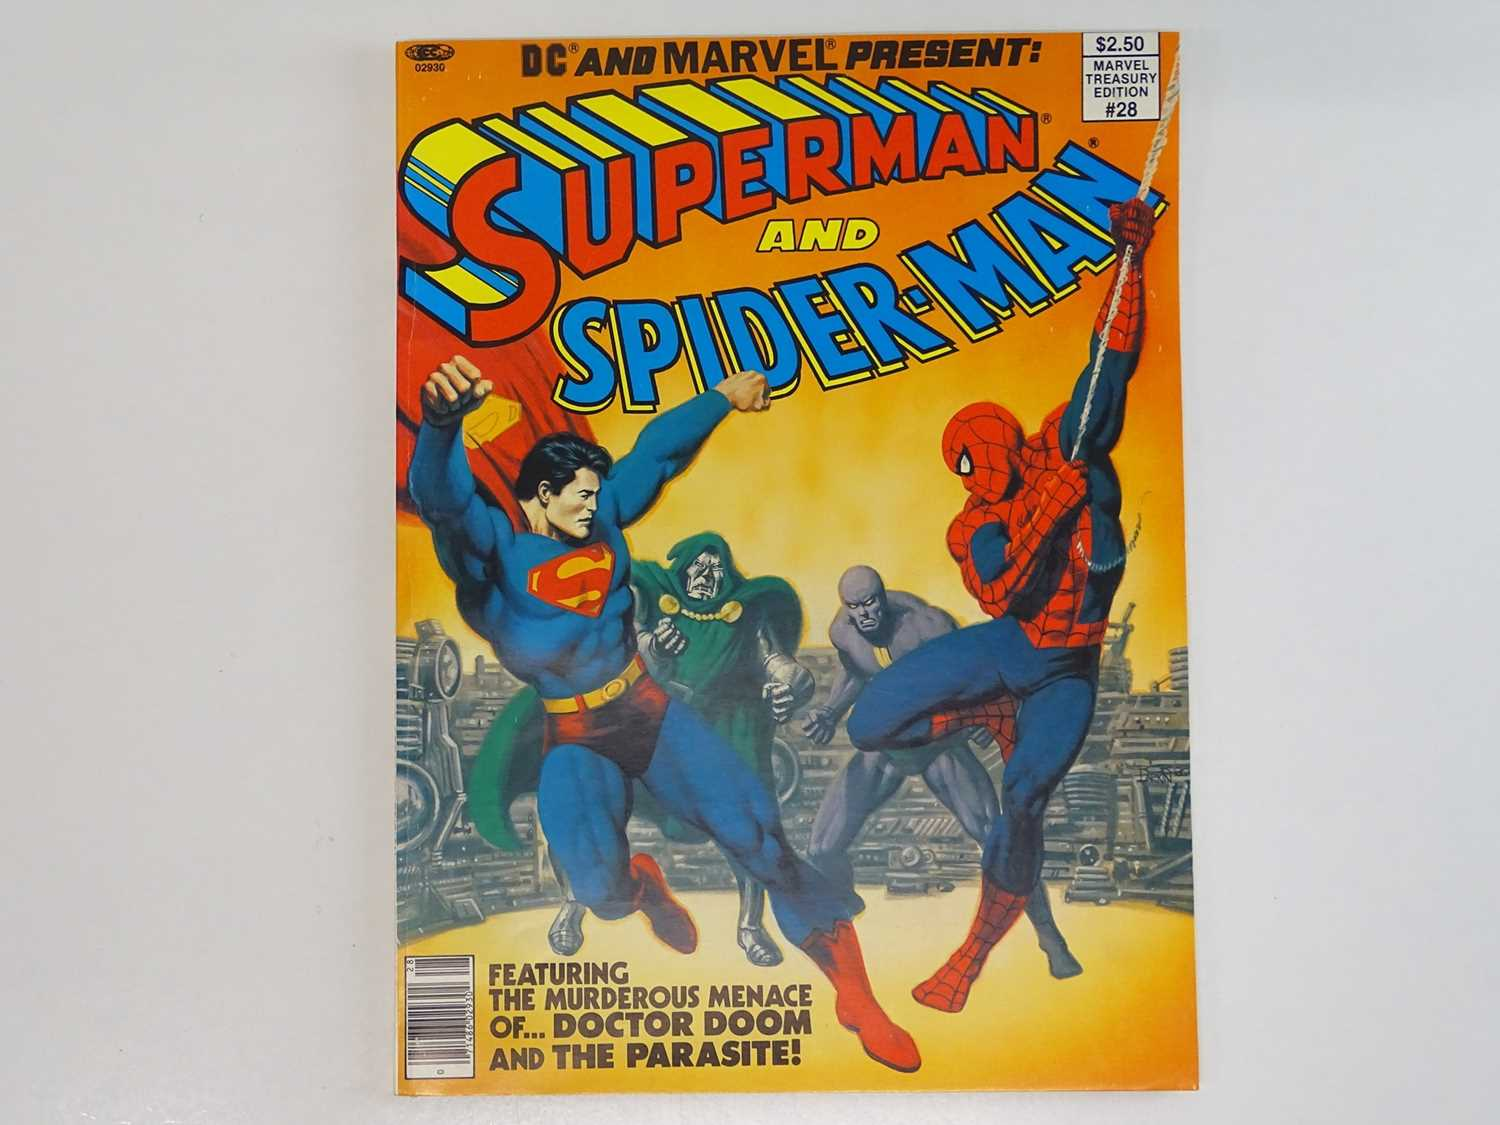 SUPERMAN AND SPIDER-MAN: COLLECTORS EDITION (1981 - MARVEL/DC) Special edition over-sized issue